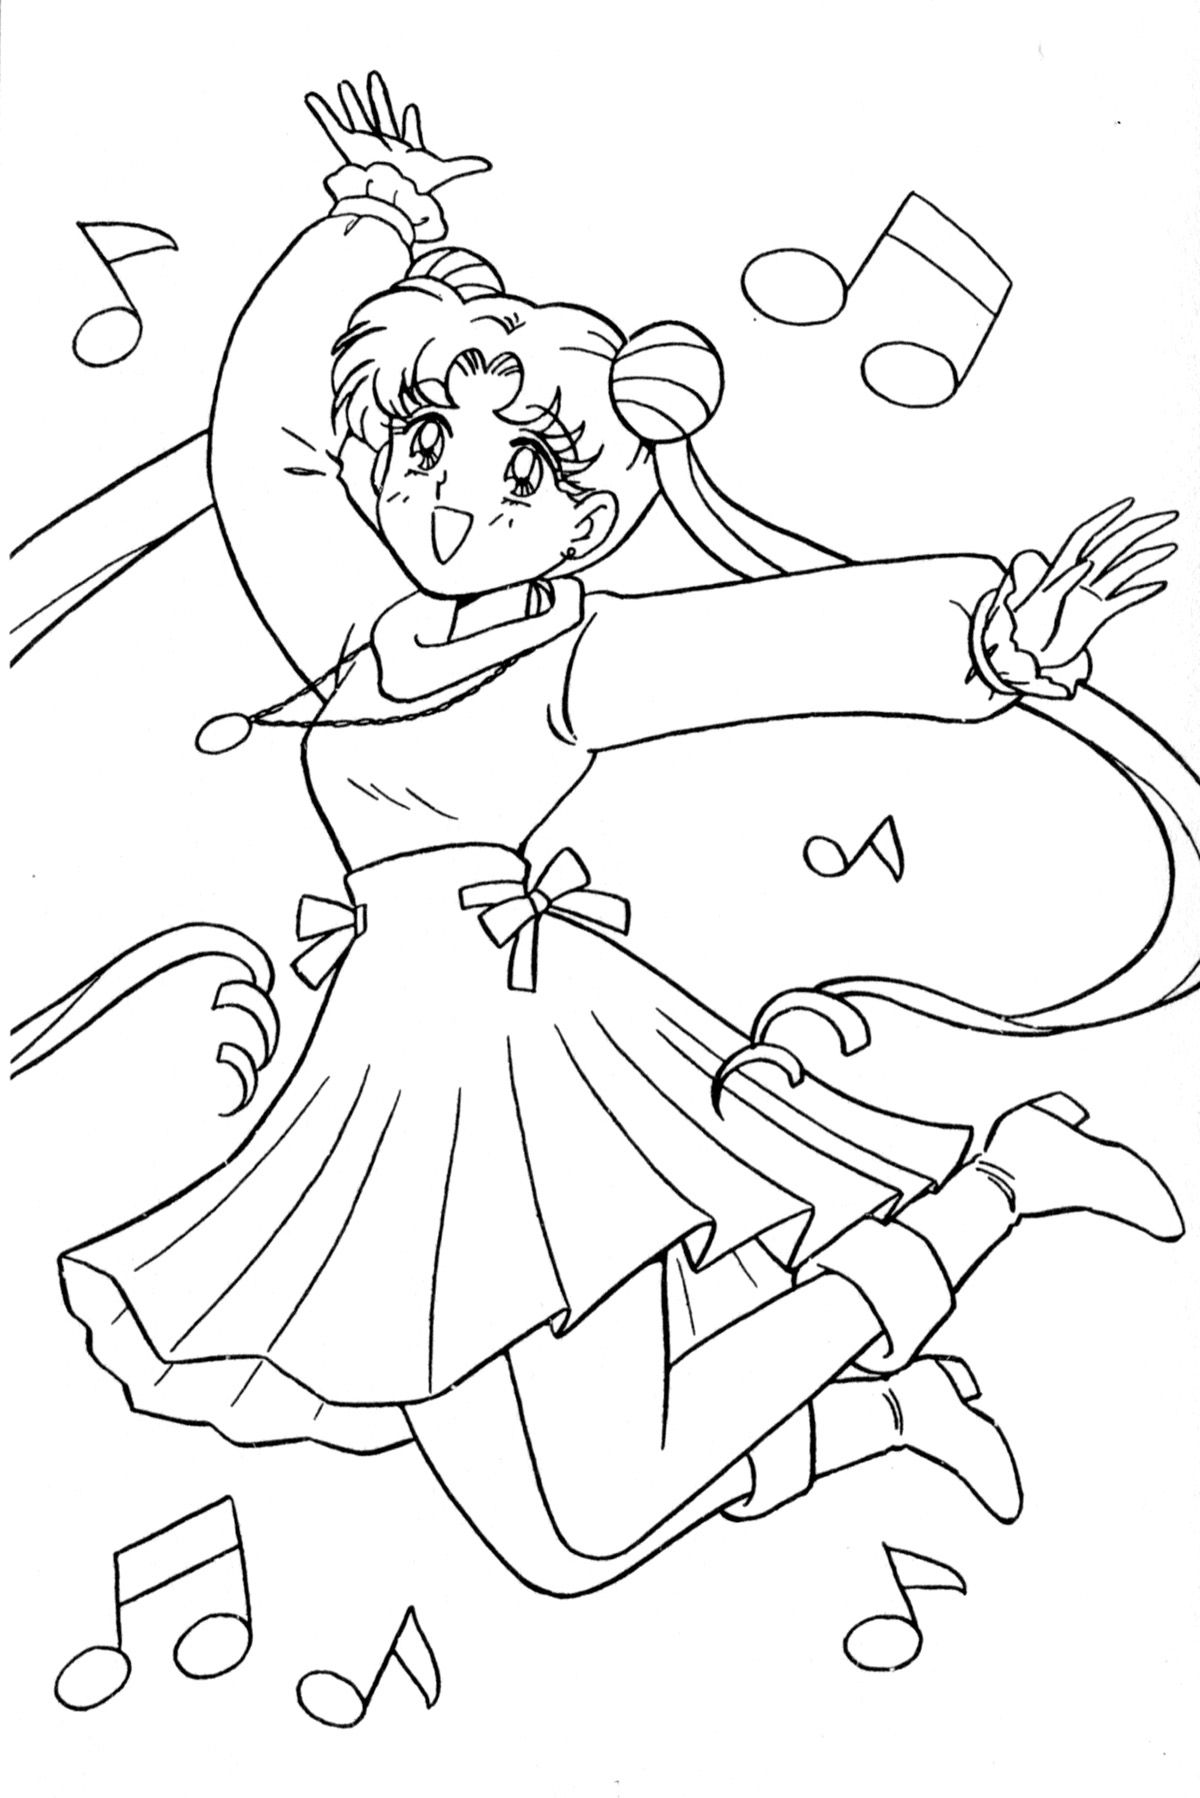 moon054.jpg (1200×1798) | Coloring pages | Pinterest | Ausmalbilder